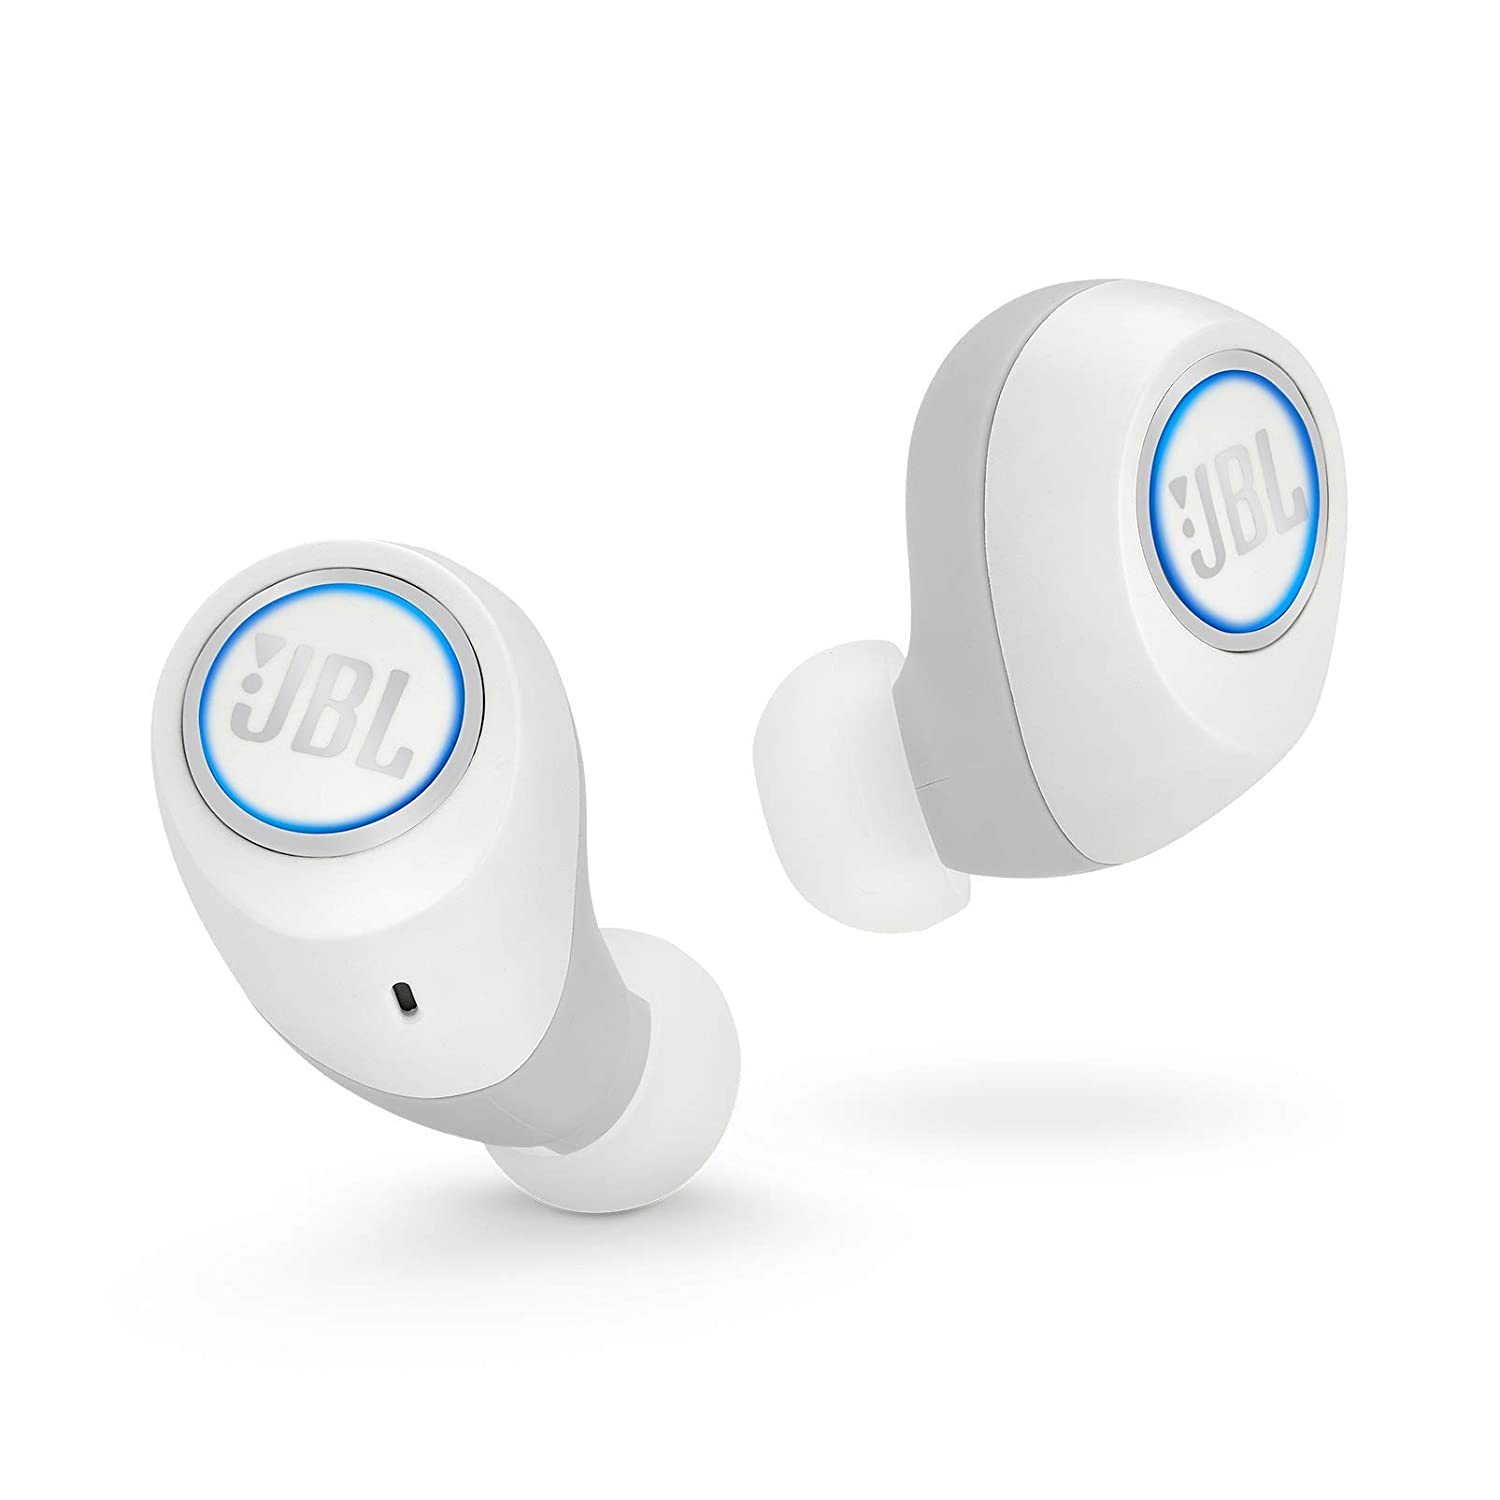 4a0866b38ab Amazon.com: JBL Free Truly Wireless in-Ear Headphones (White): Health &  Personal Care